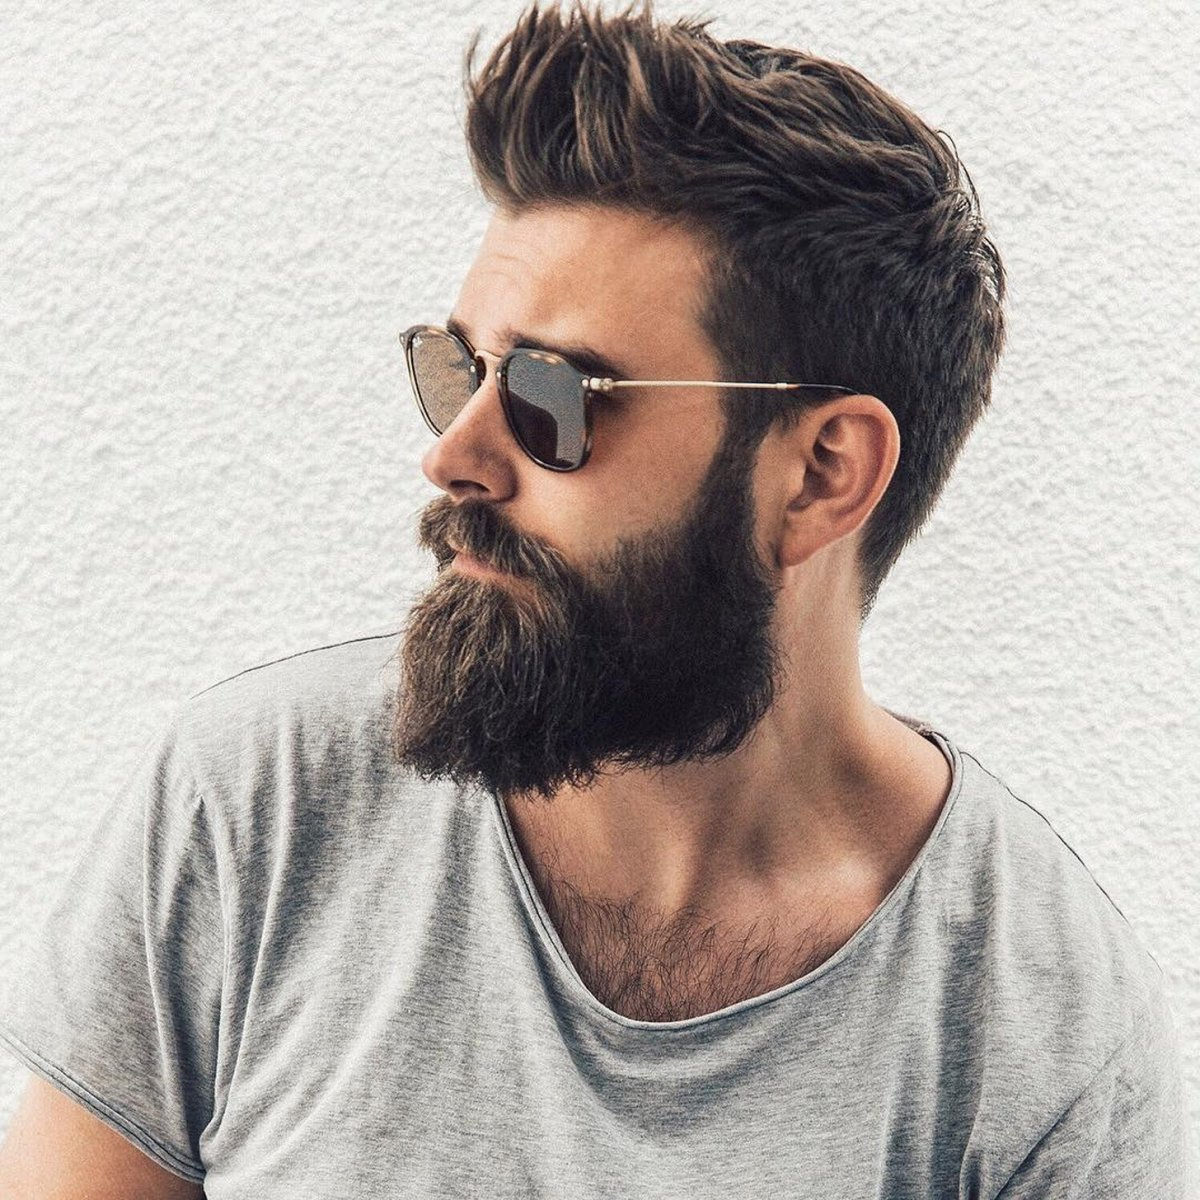 The Ultimate Facial Hair Styles For Your Face Type